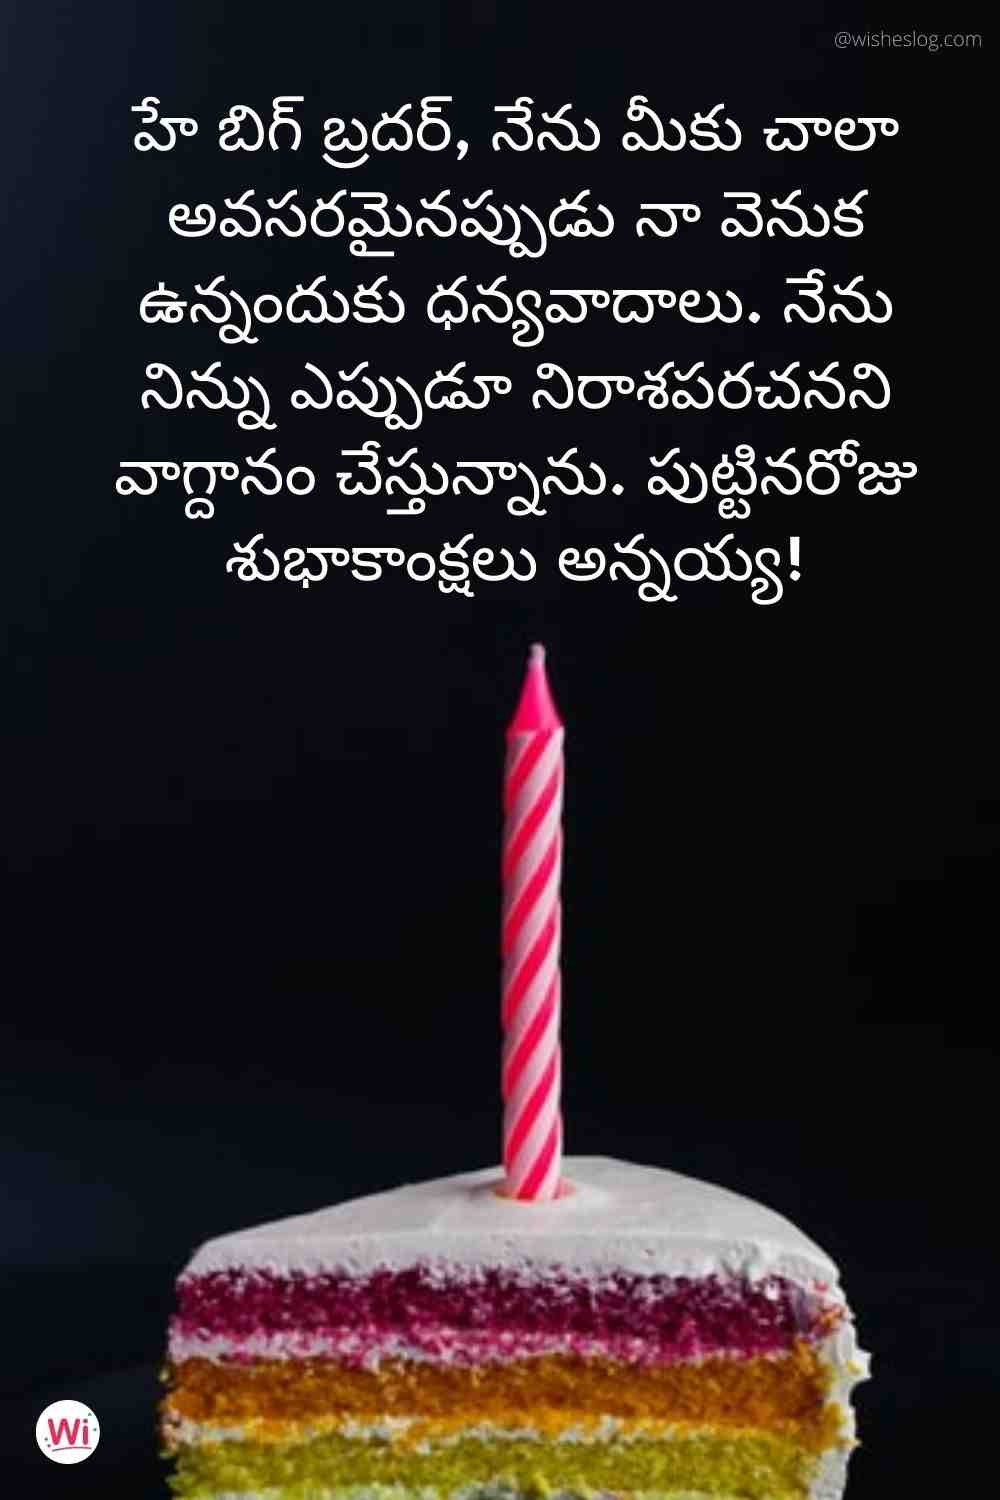 wish you happy birthday in telugu for brother